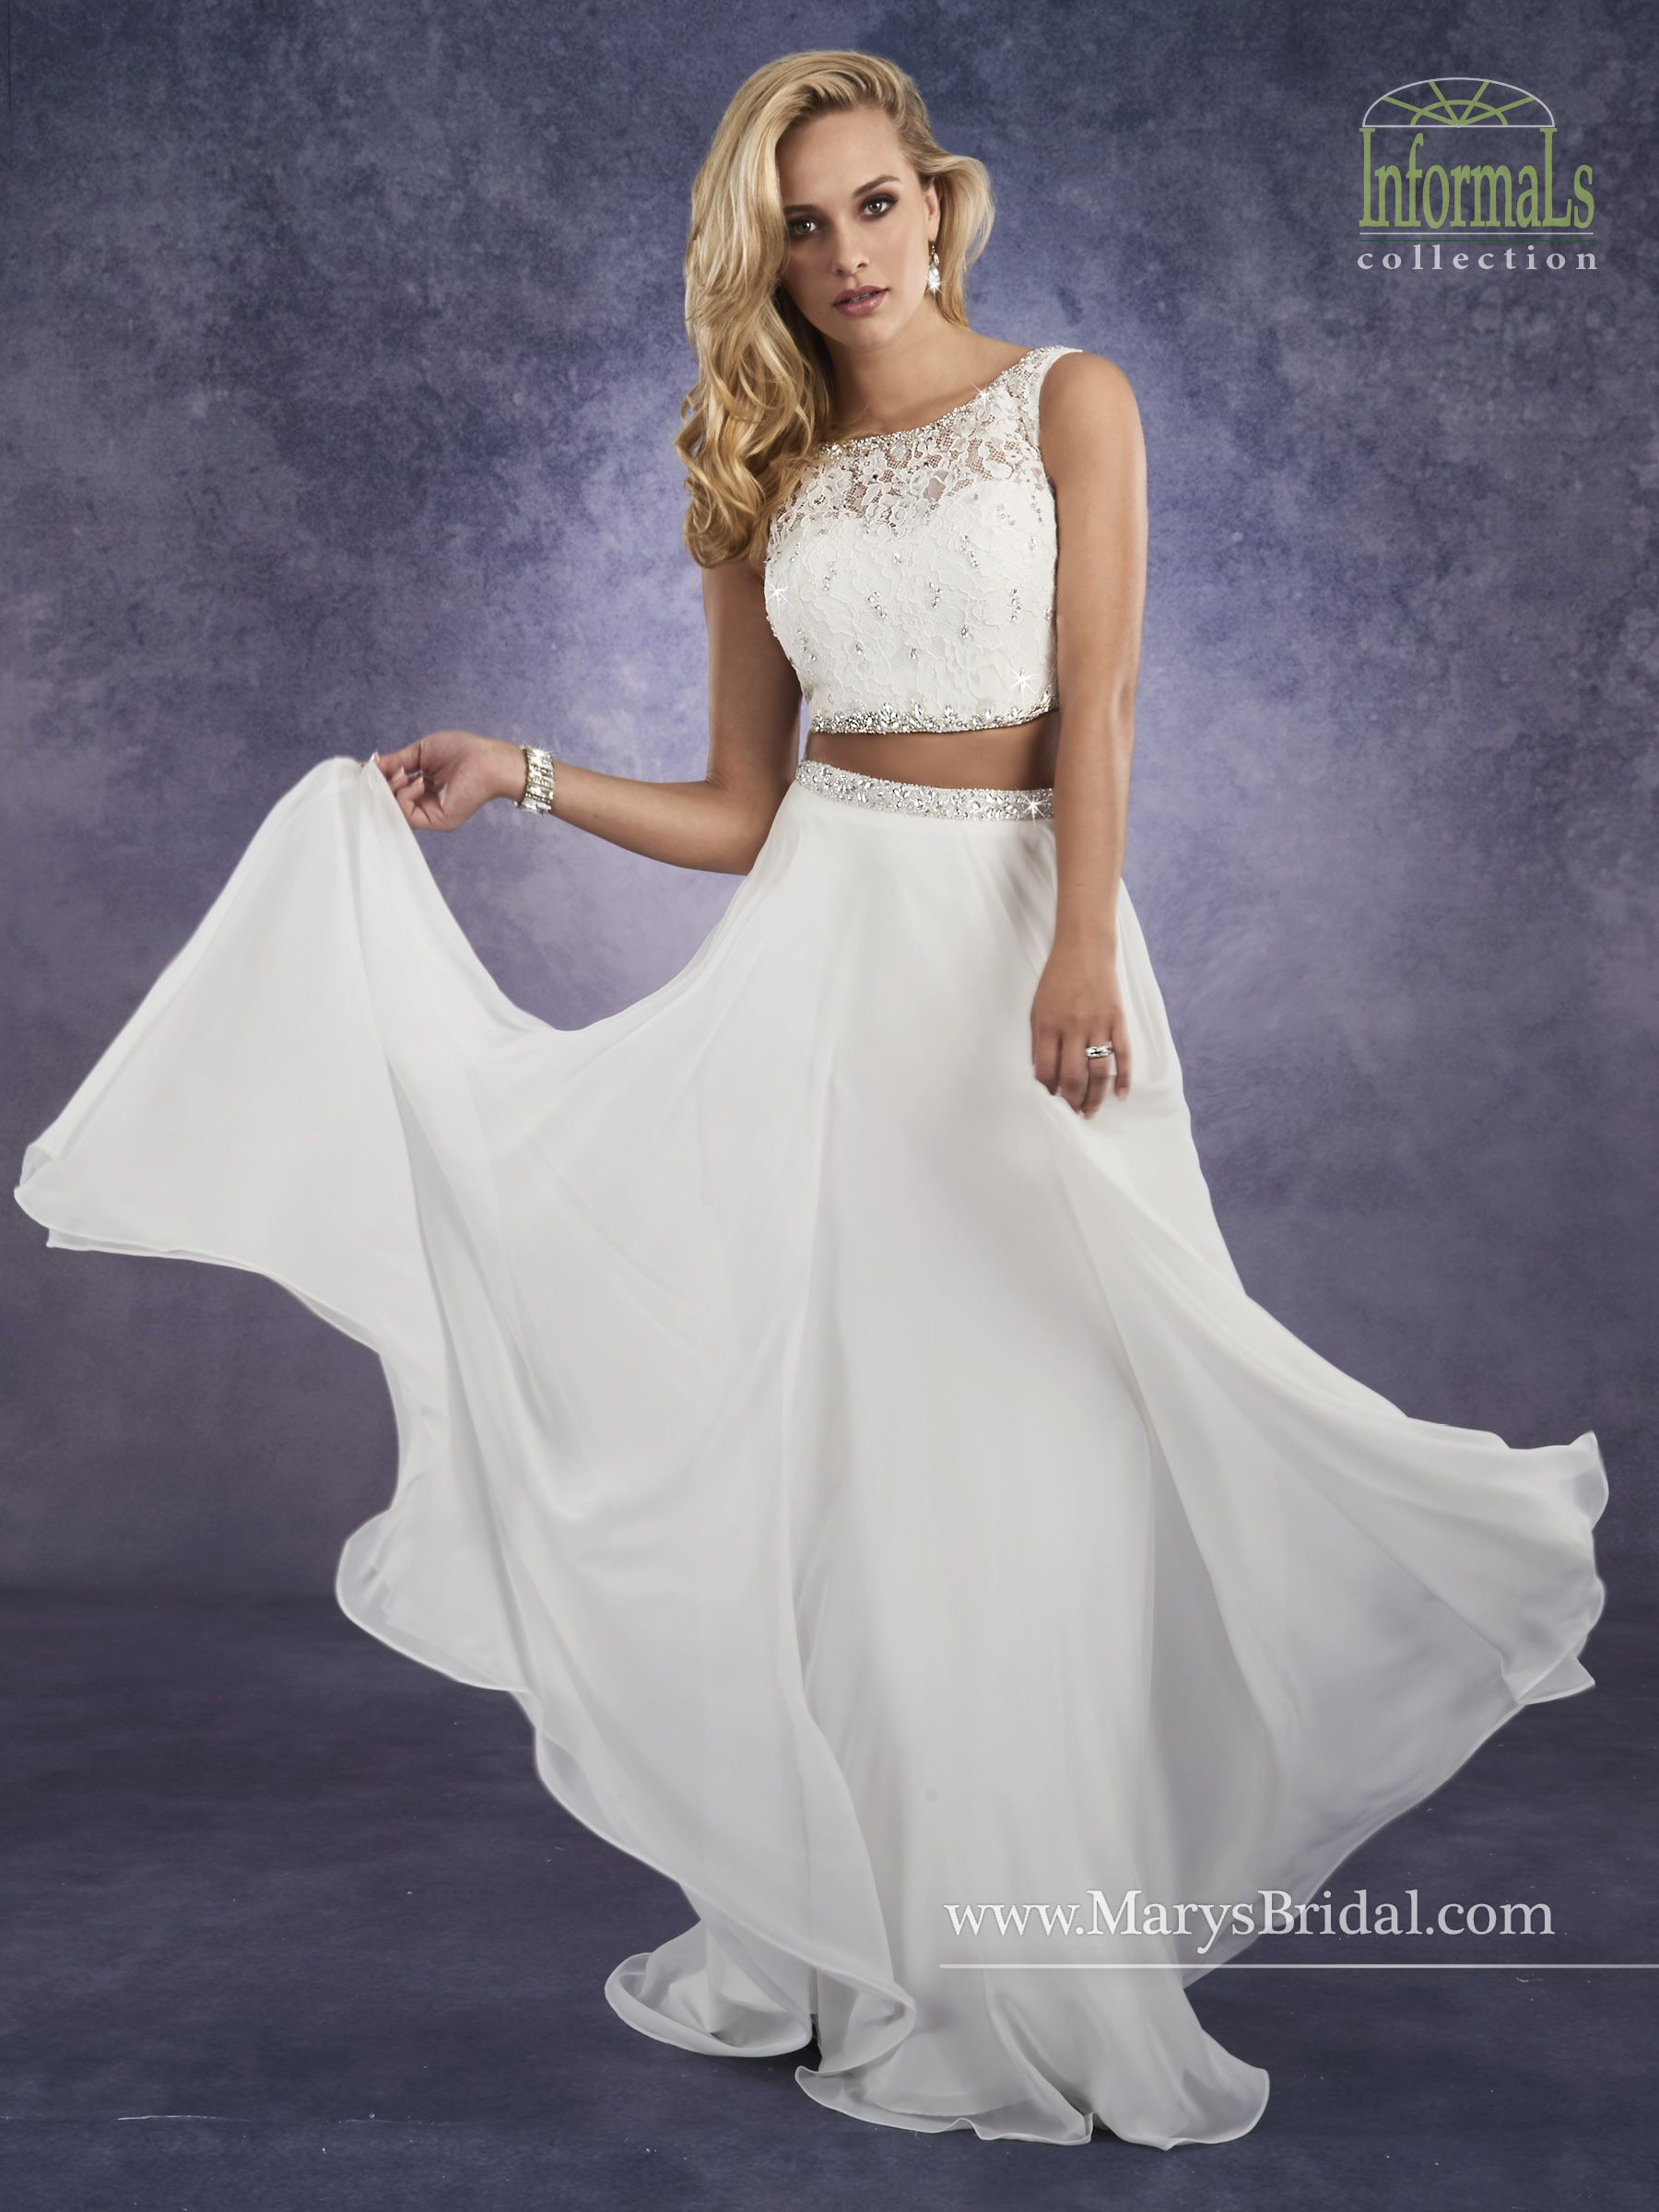 style 2650 | wedding jrc | pinterest | bridal gowns, gowns and